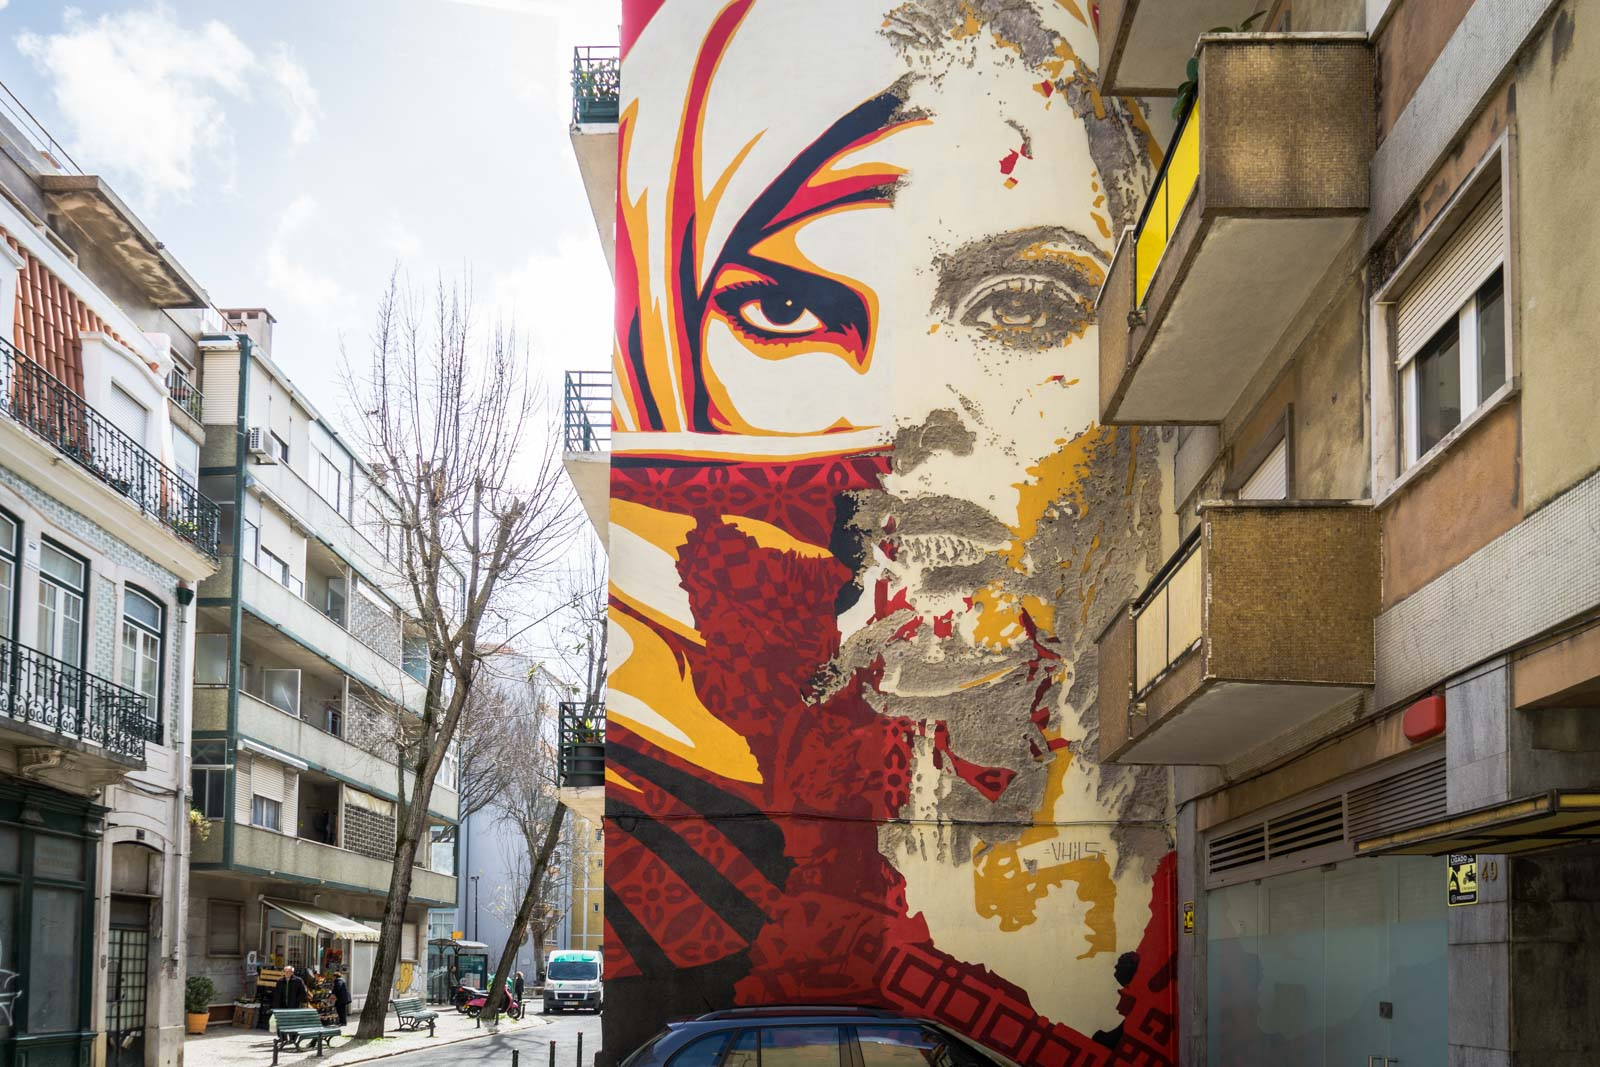 Street art in Graca, Lisbon